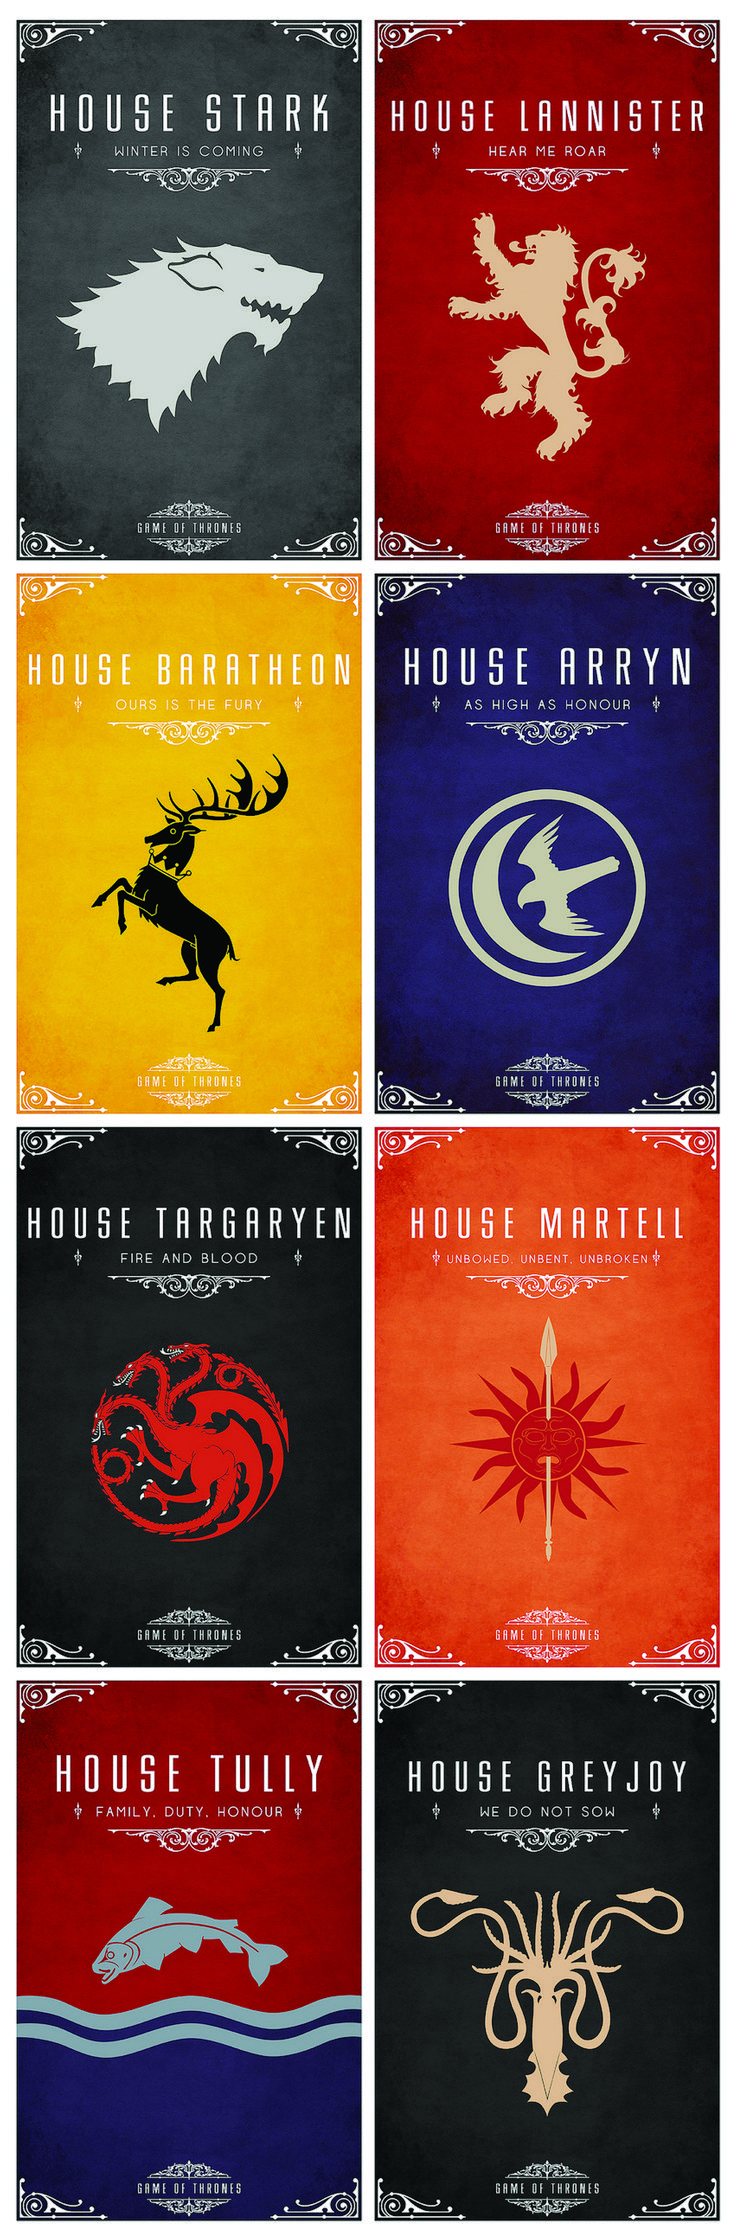 Game of Thrones minimalist posters. All the major houses. Made by Thomas Gateley.